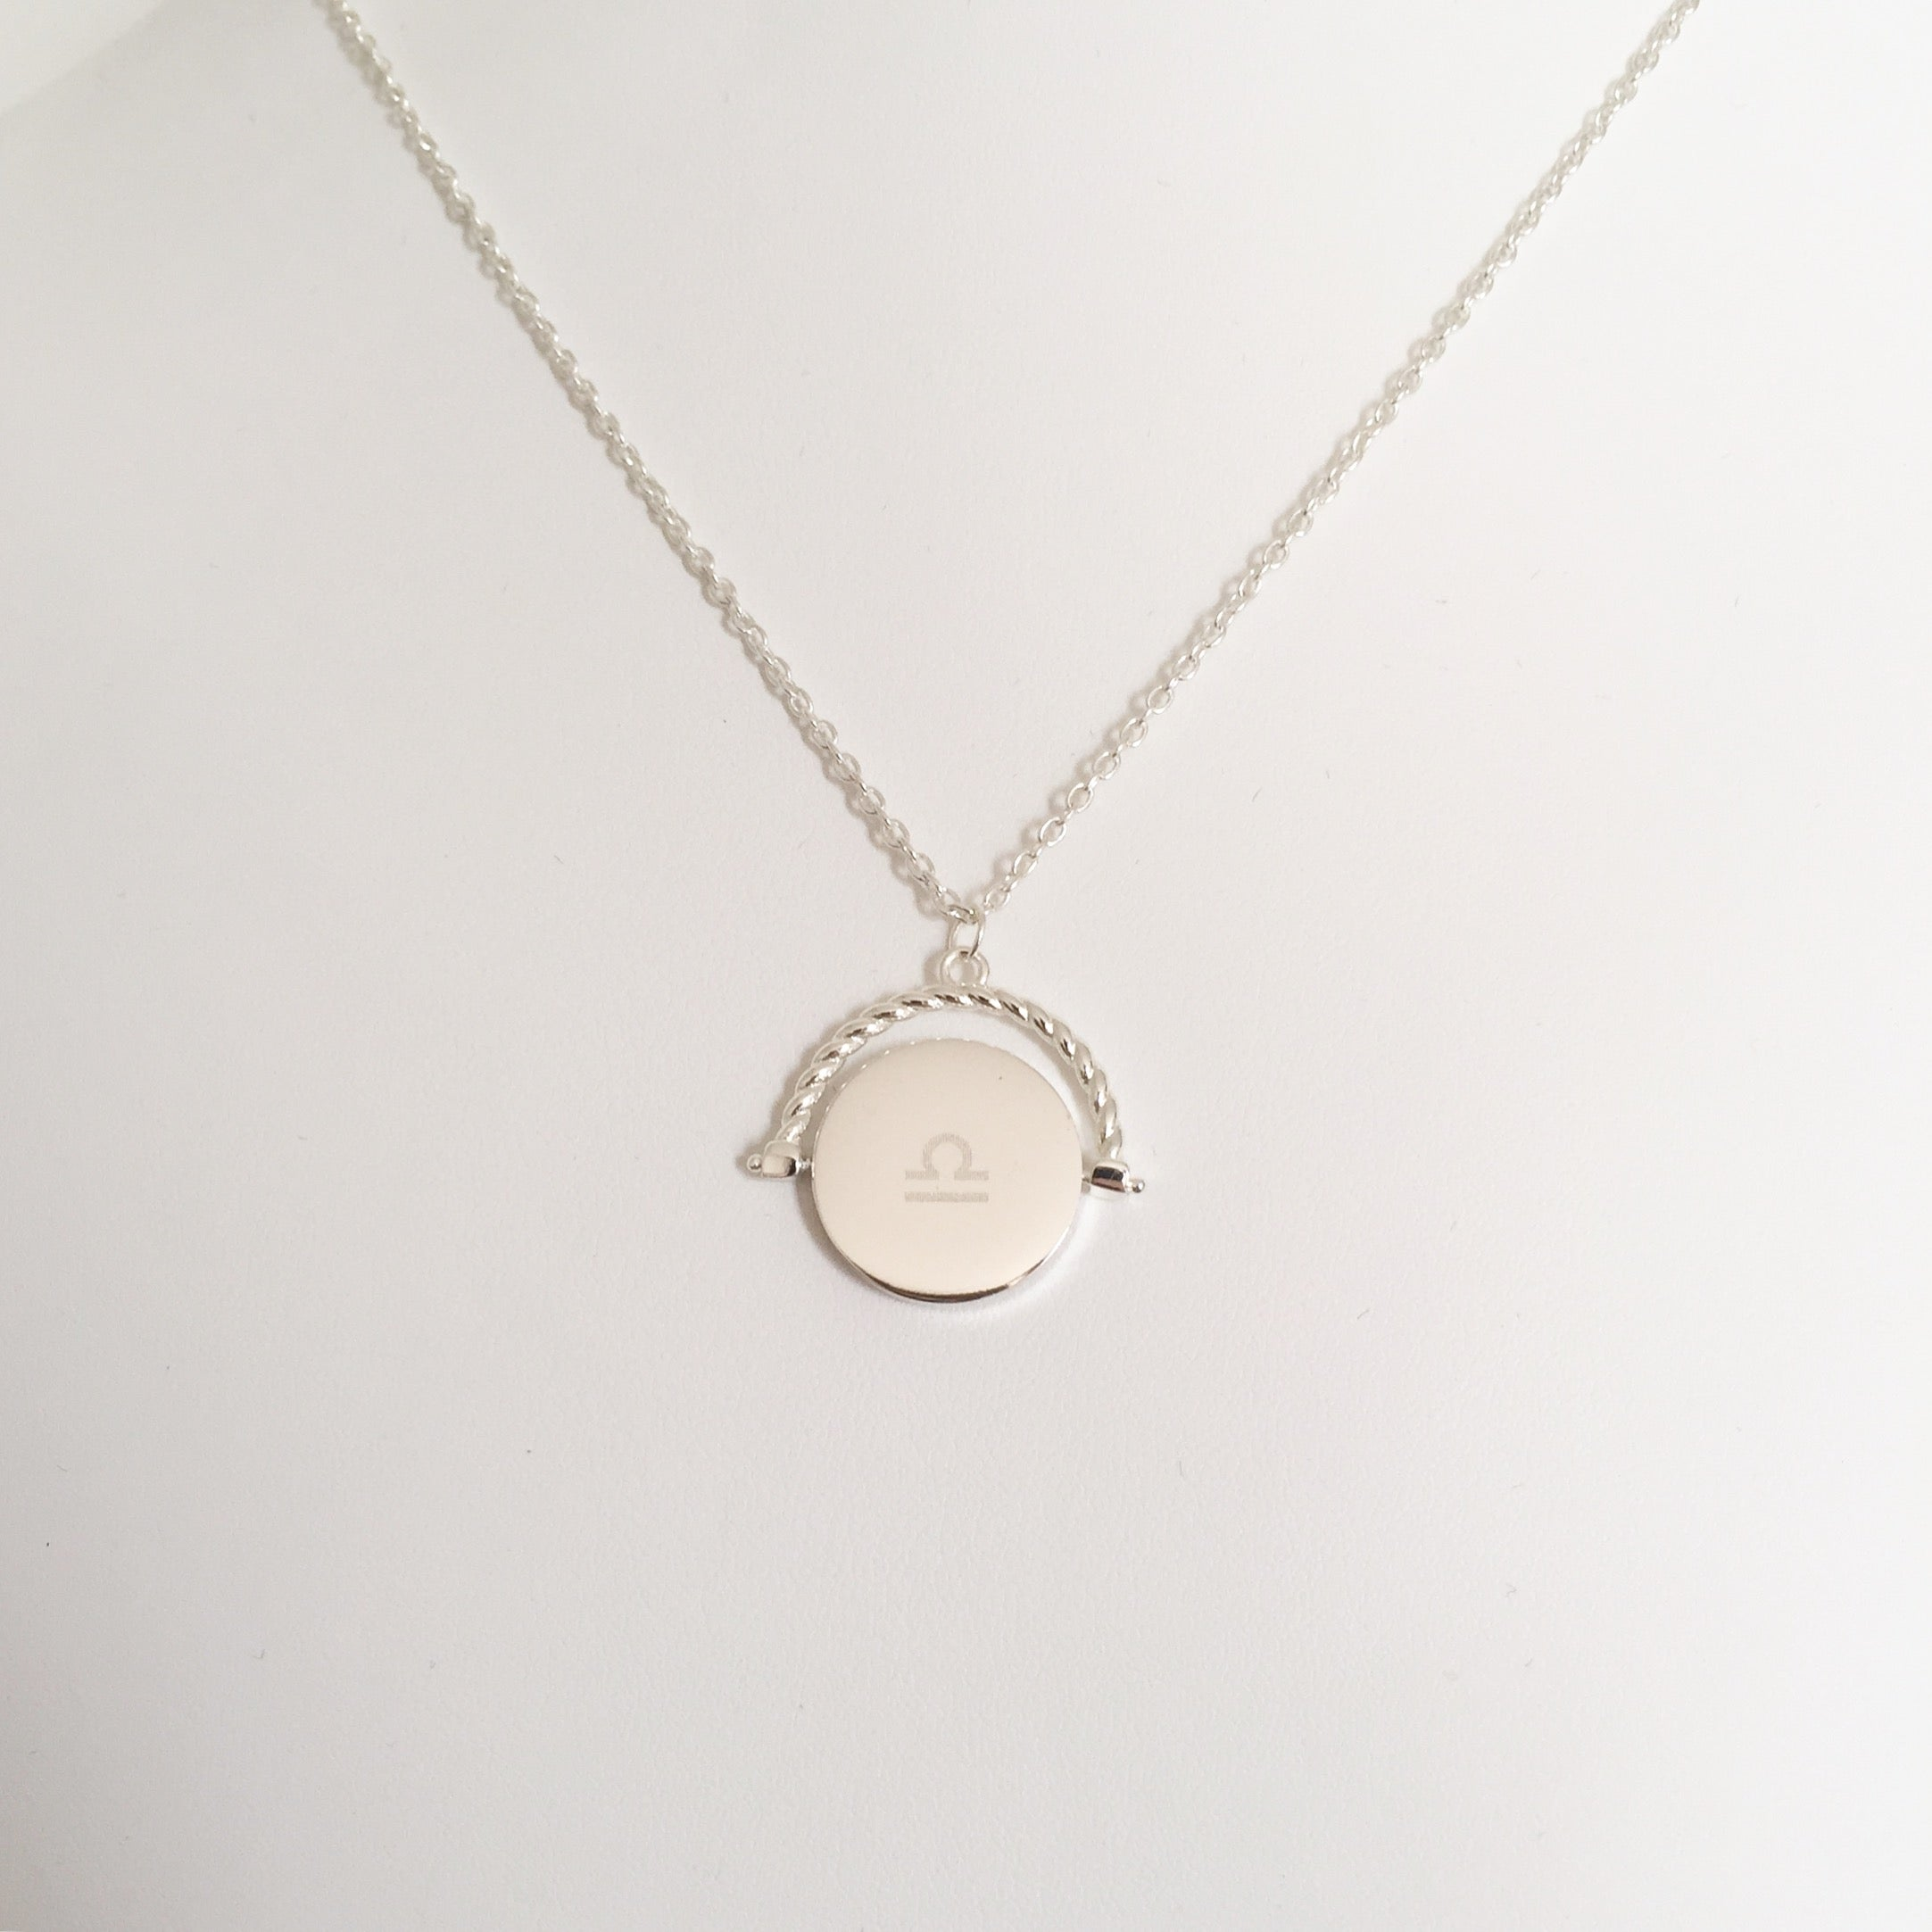 Luxe spin monogrammed pendant necklace frankly my dear store luxe spin monogrammed pendant necklace aloadofball Choice Image